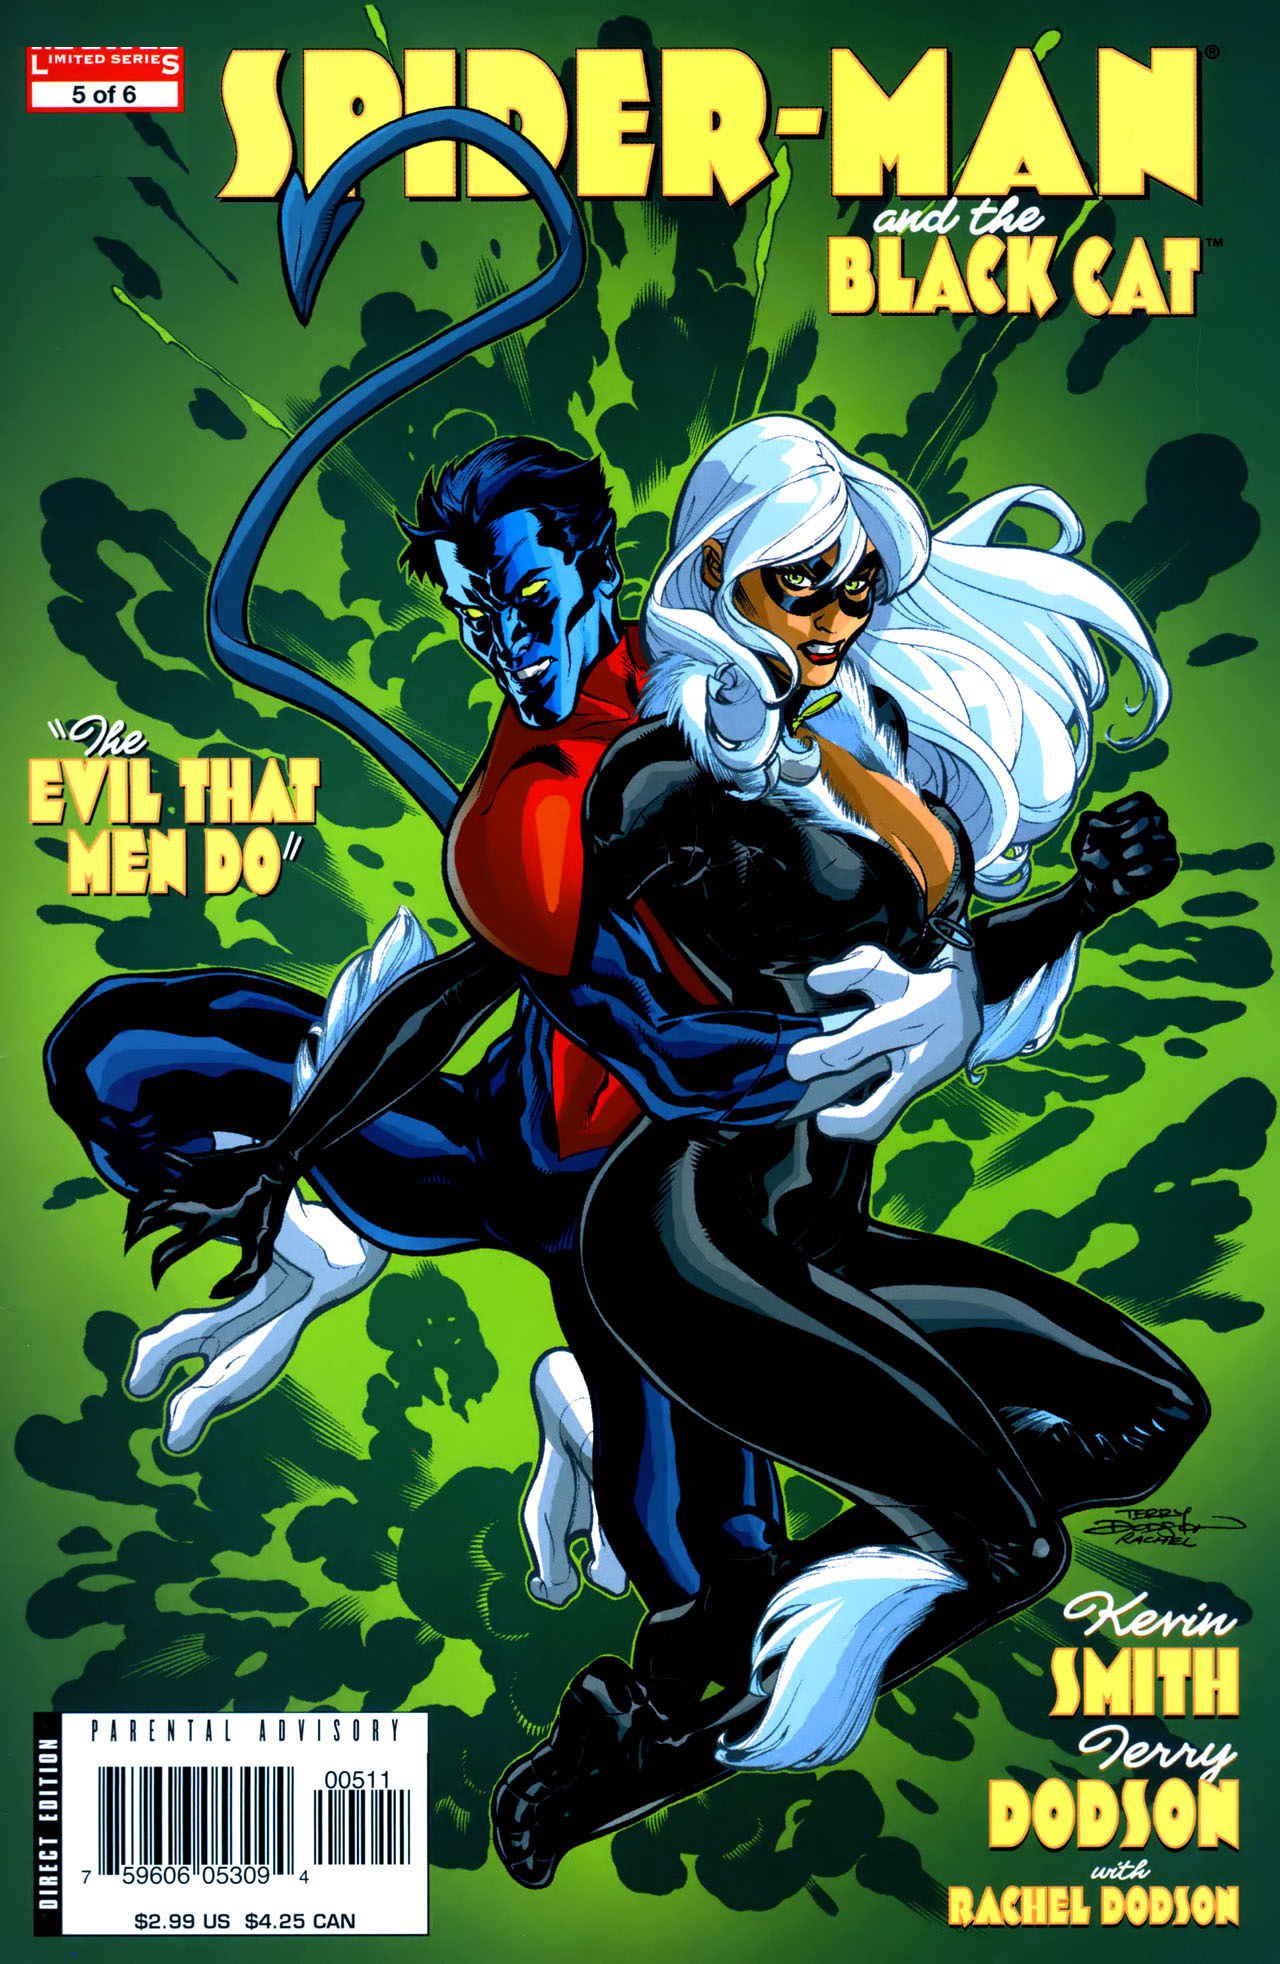 Amazoncom SpiderManBlack Cat The Evil That Men Do